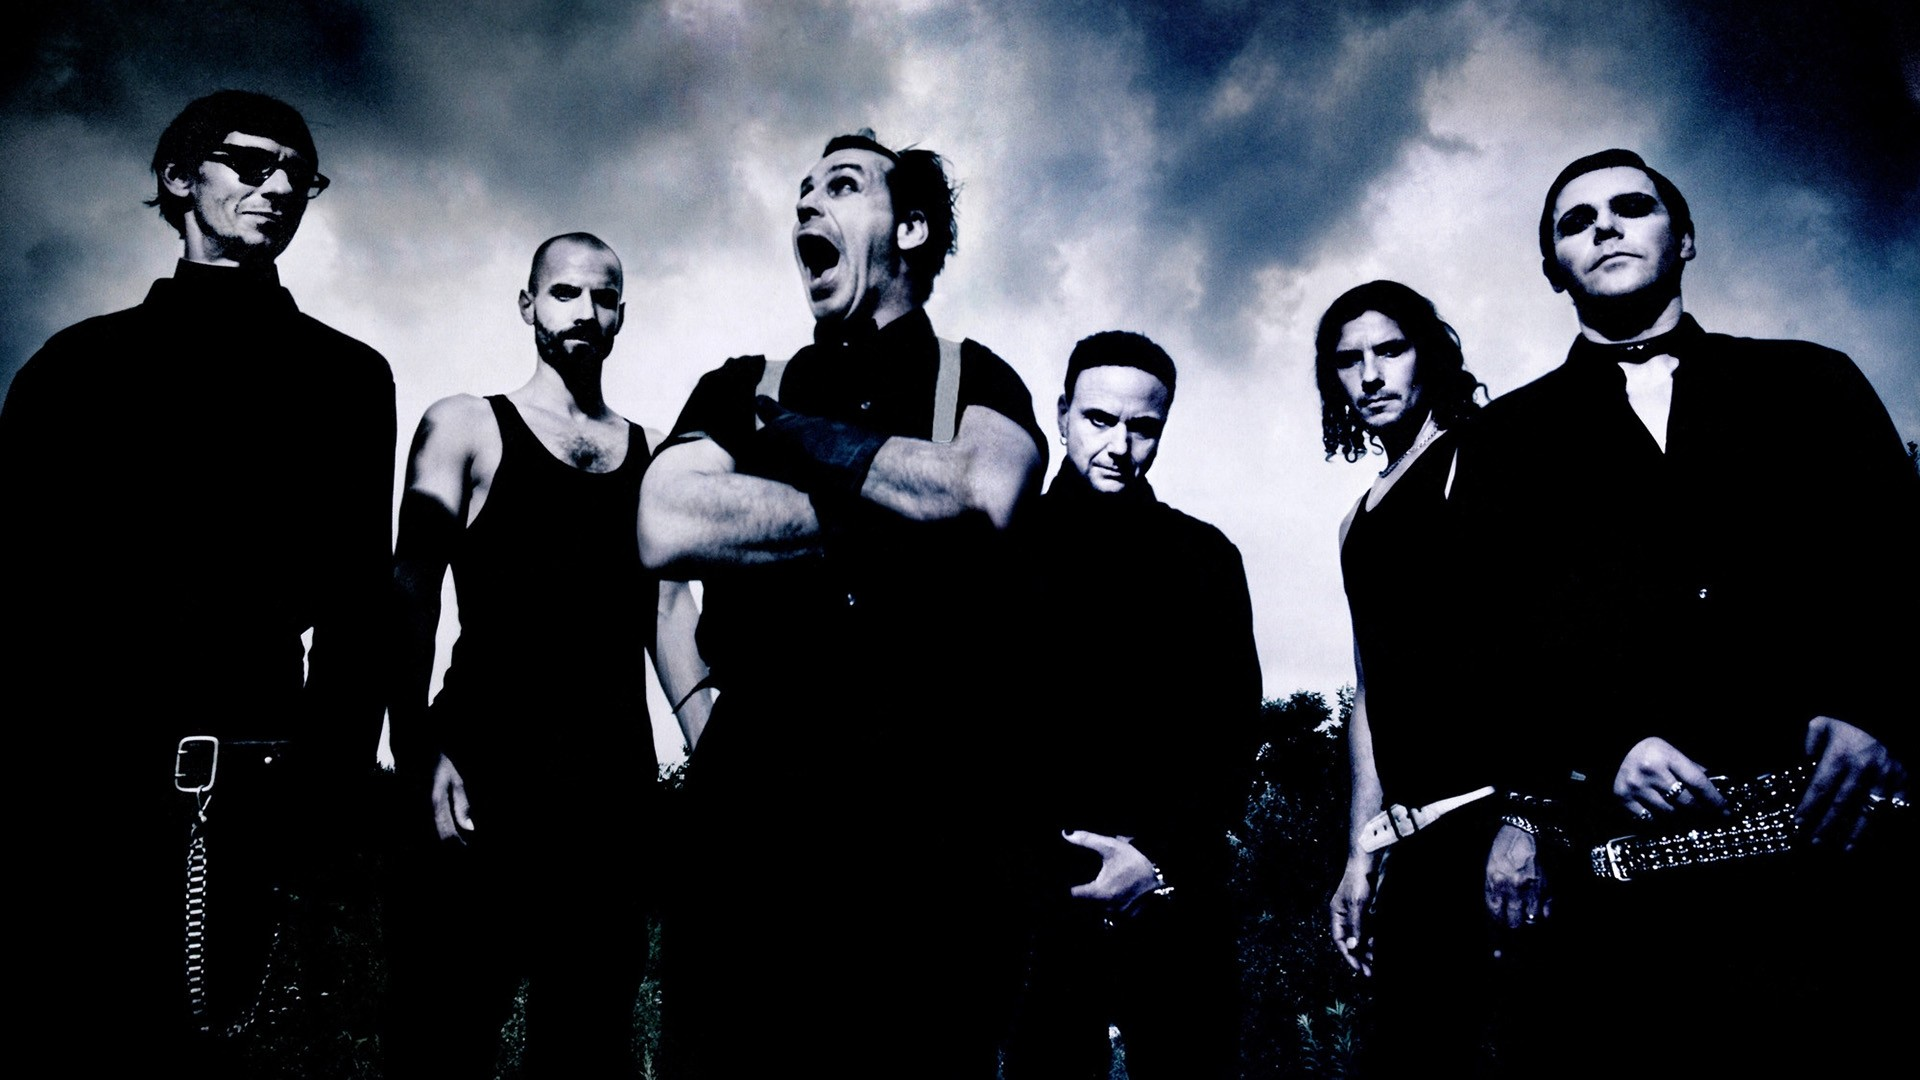 1920x1080 Preview wallpaper rammstein, scream, sky, clouds, image